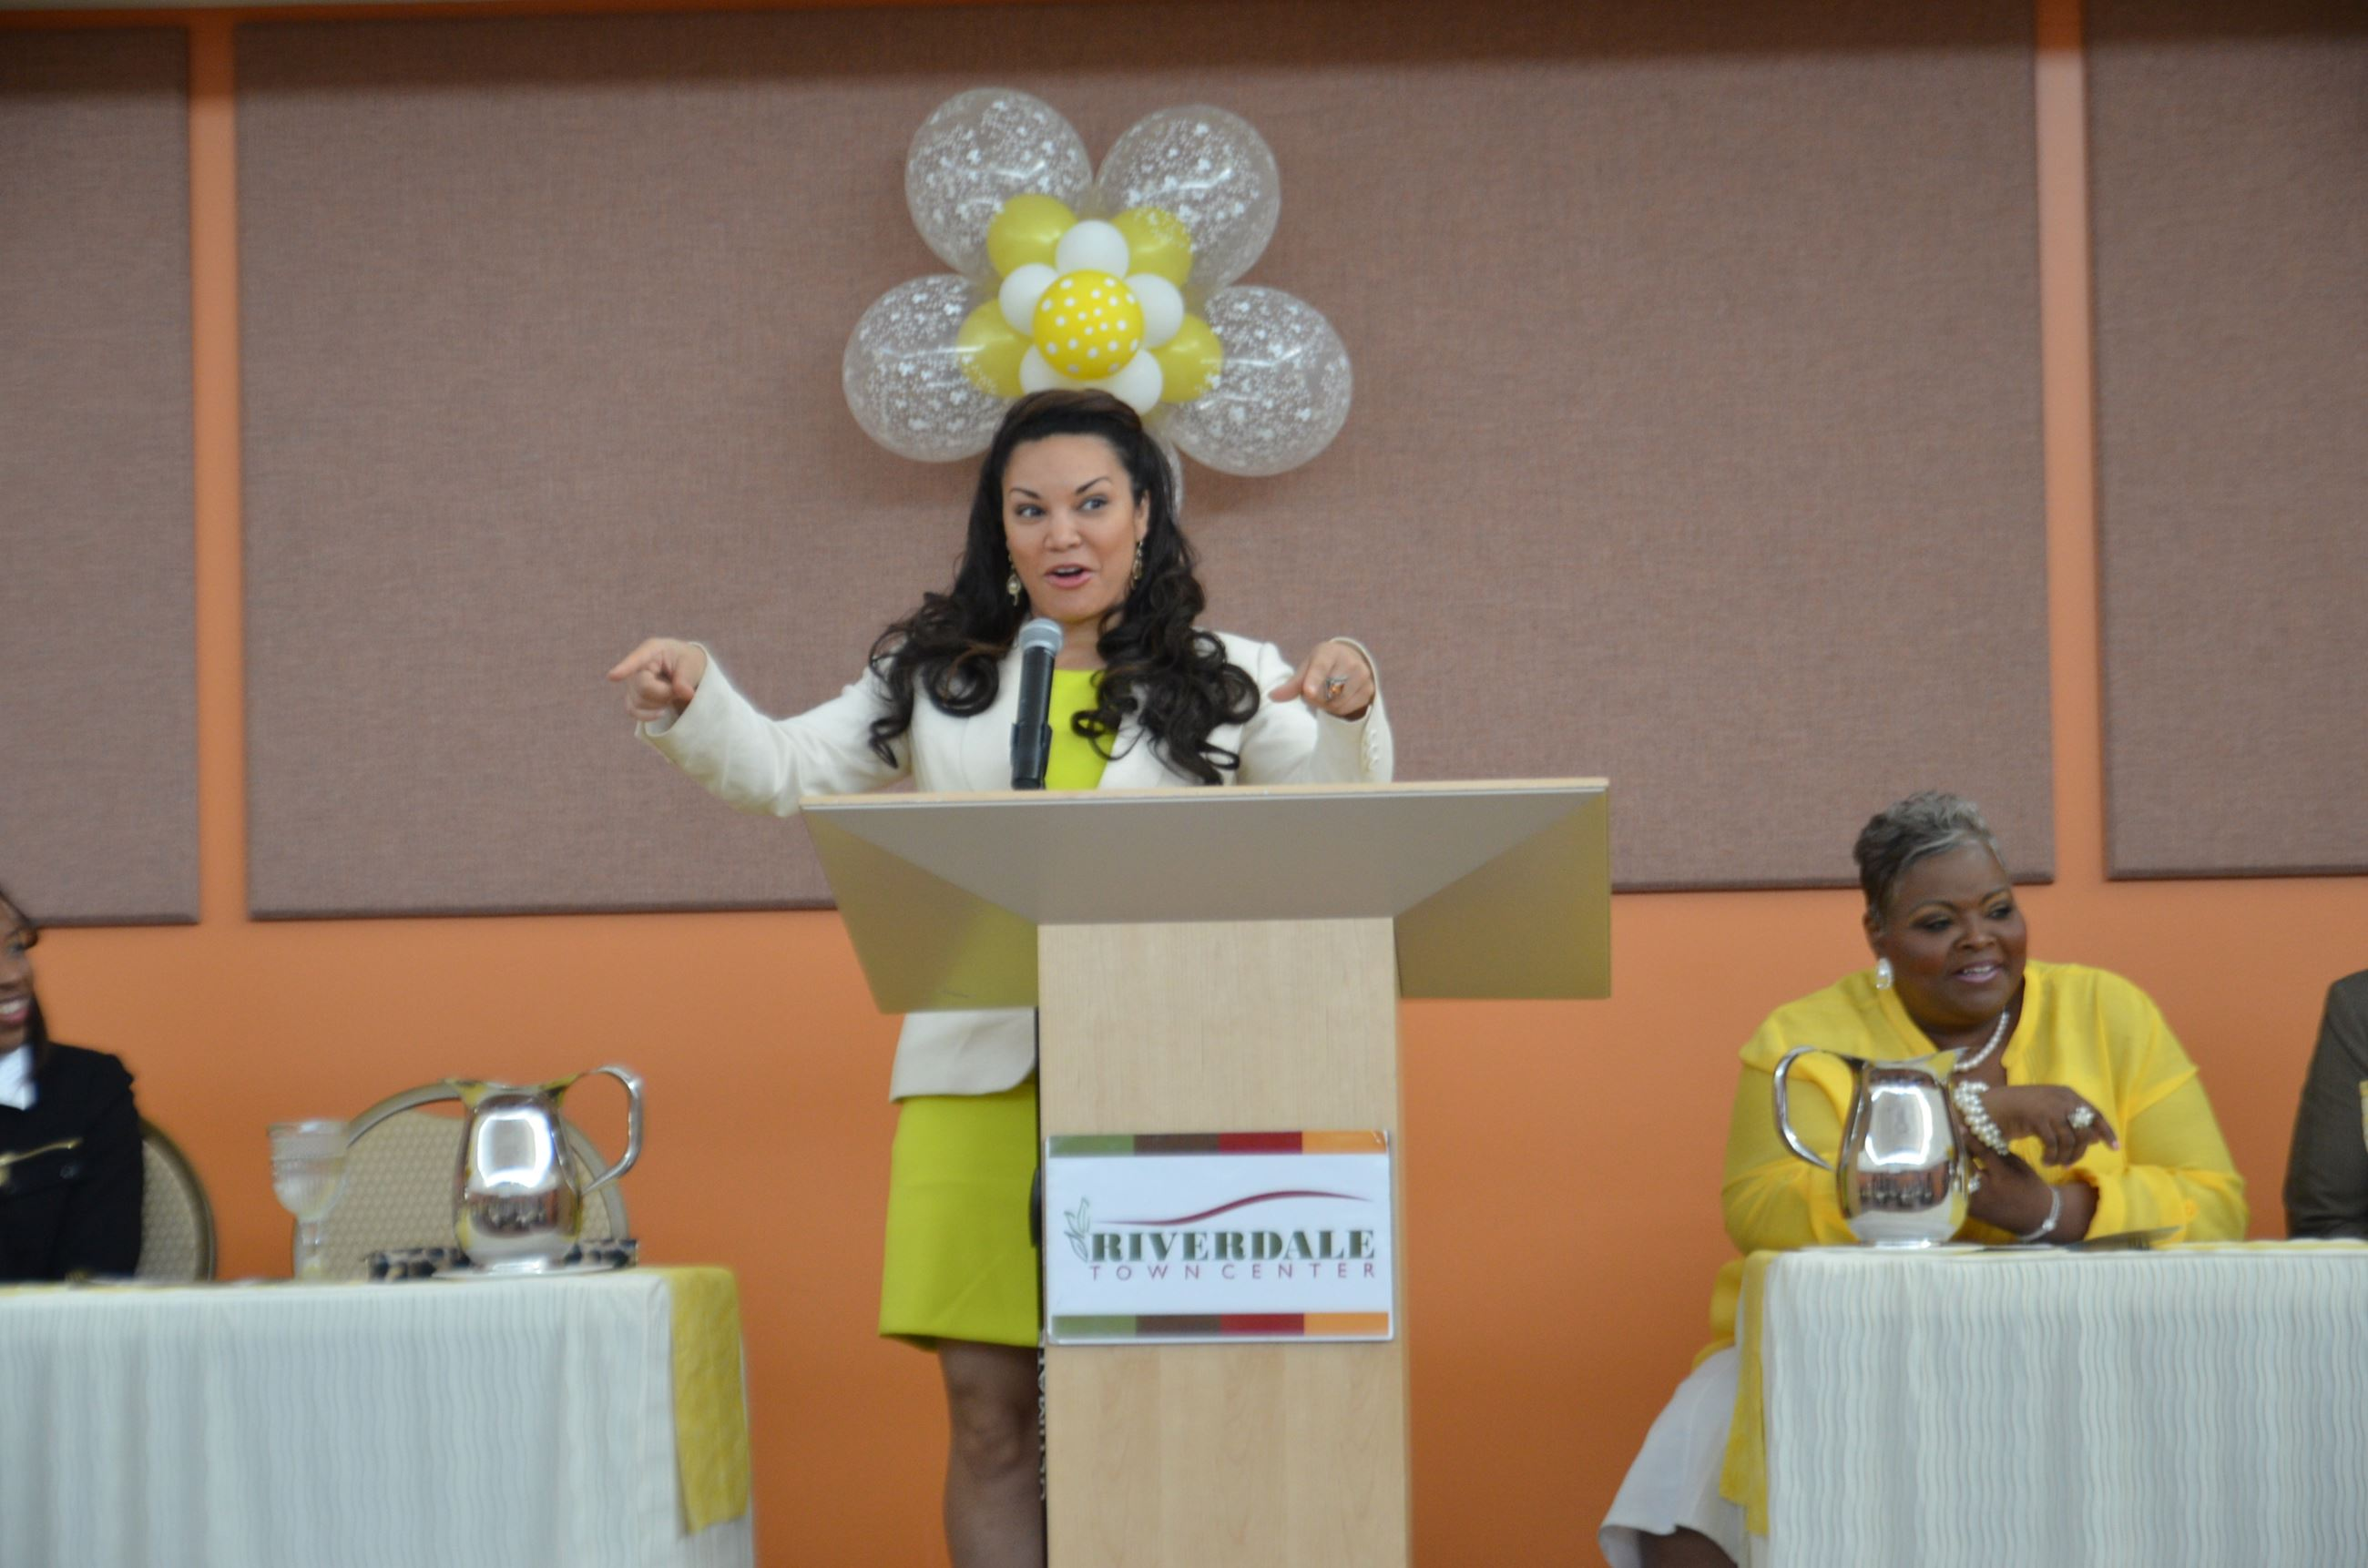 Woman Pointing While Speaking at Podium